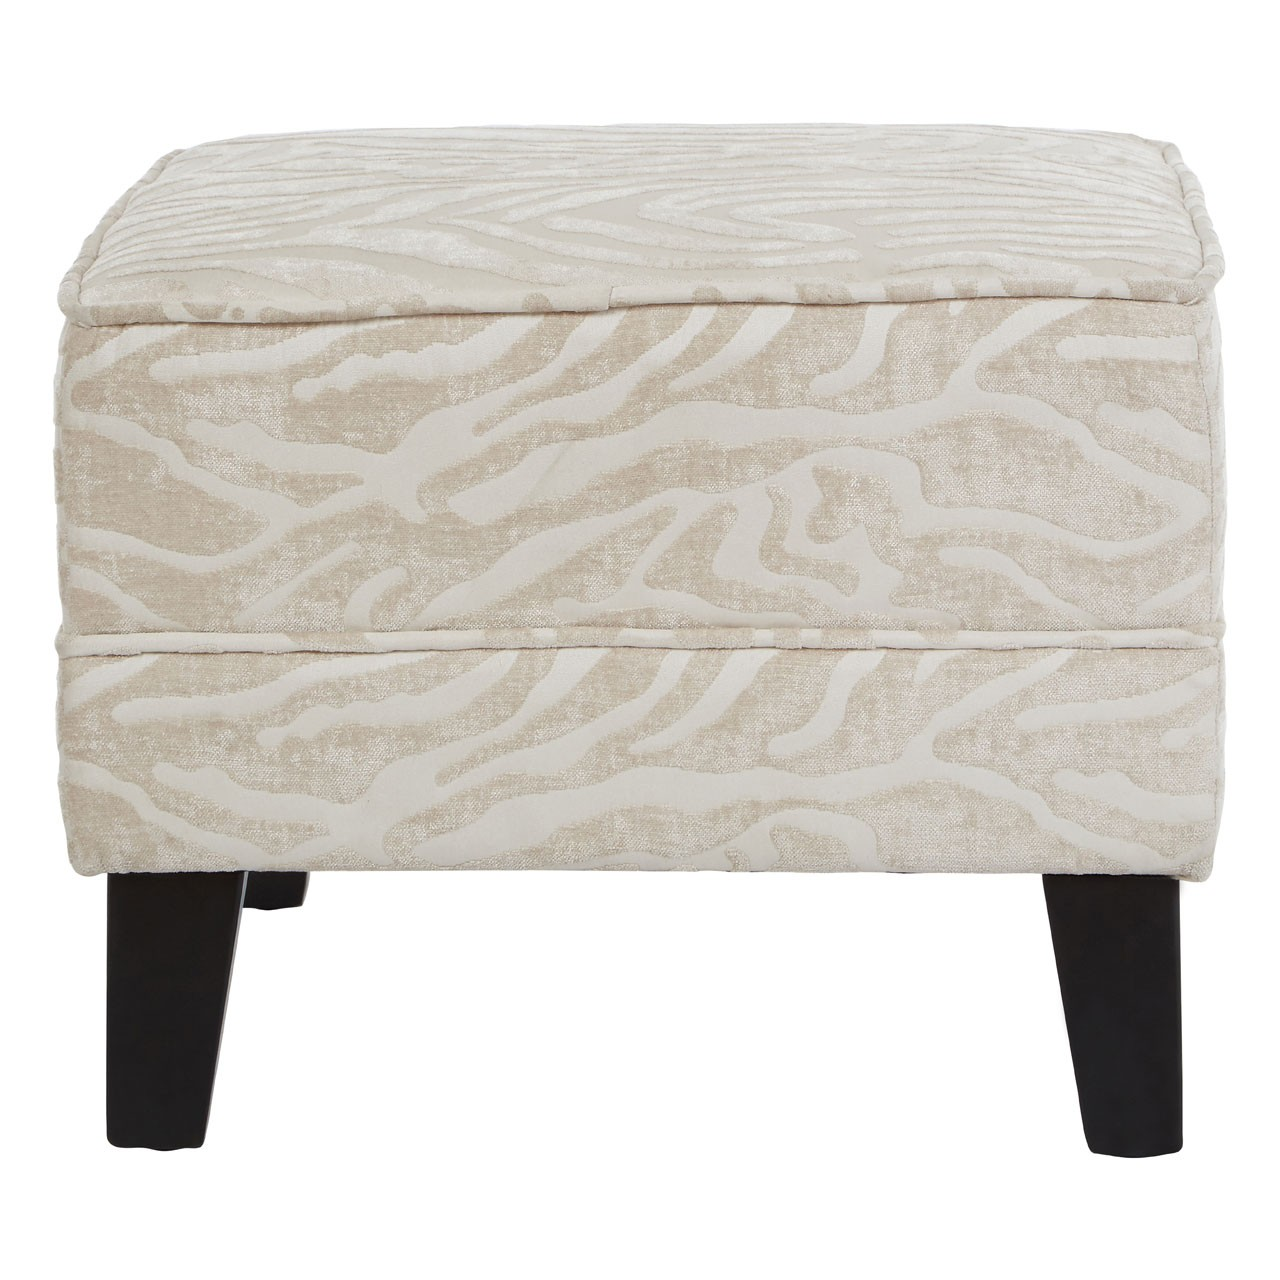 Luxe Footstool with Textured Animal Print, Fabric, Natural